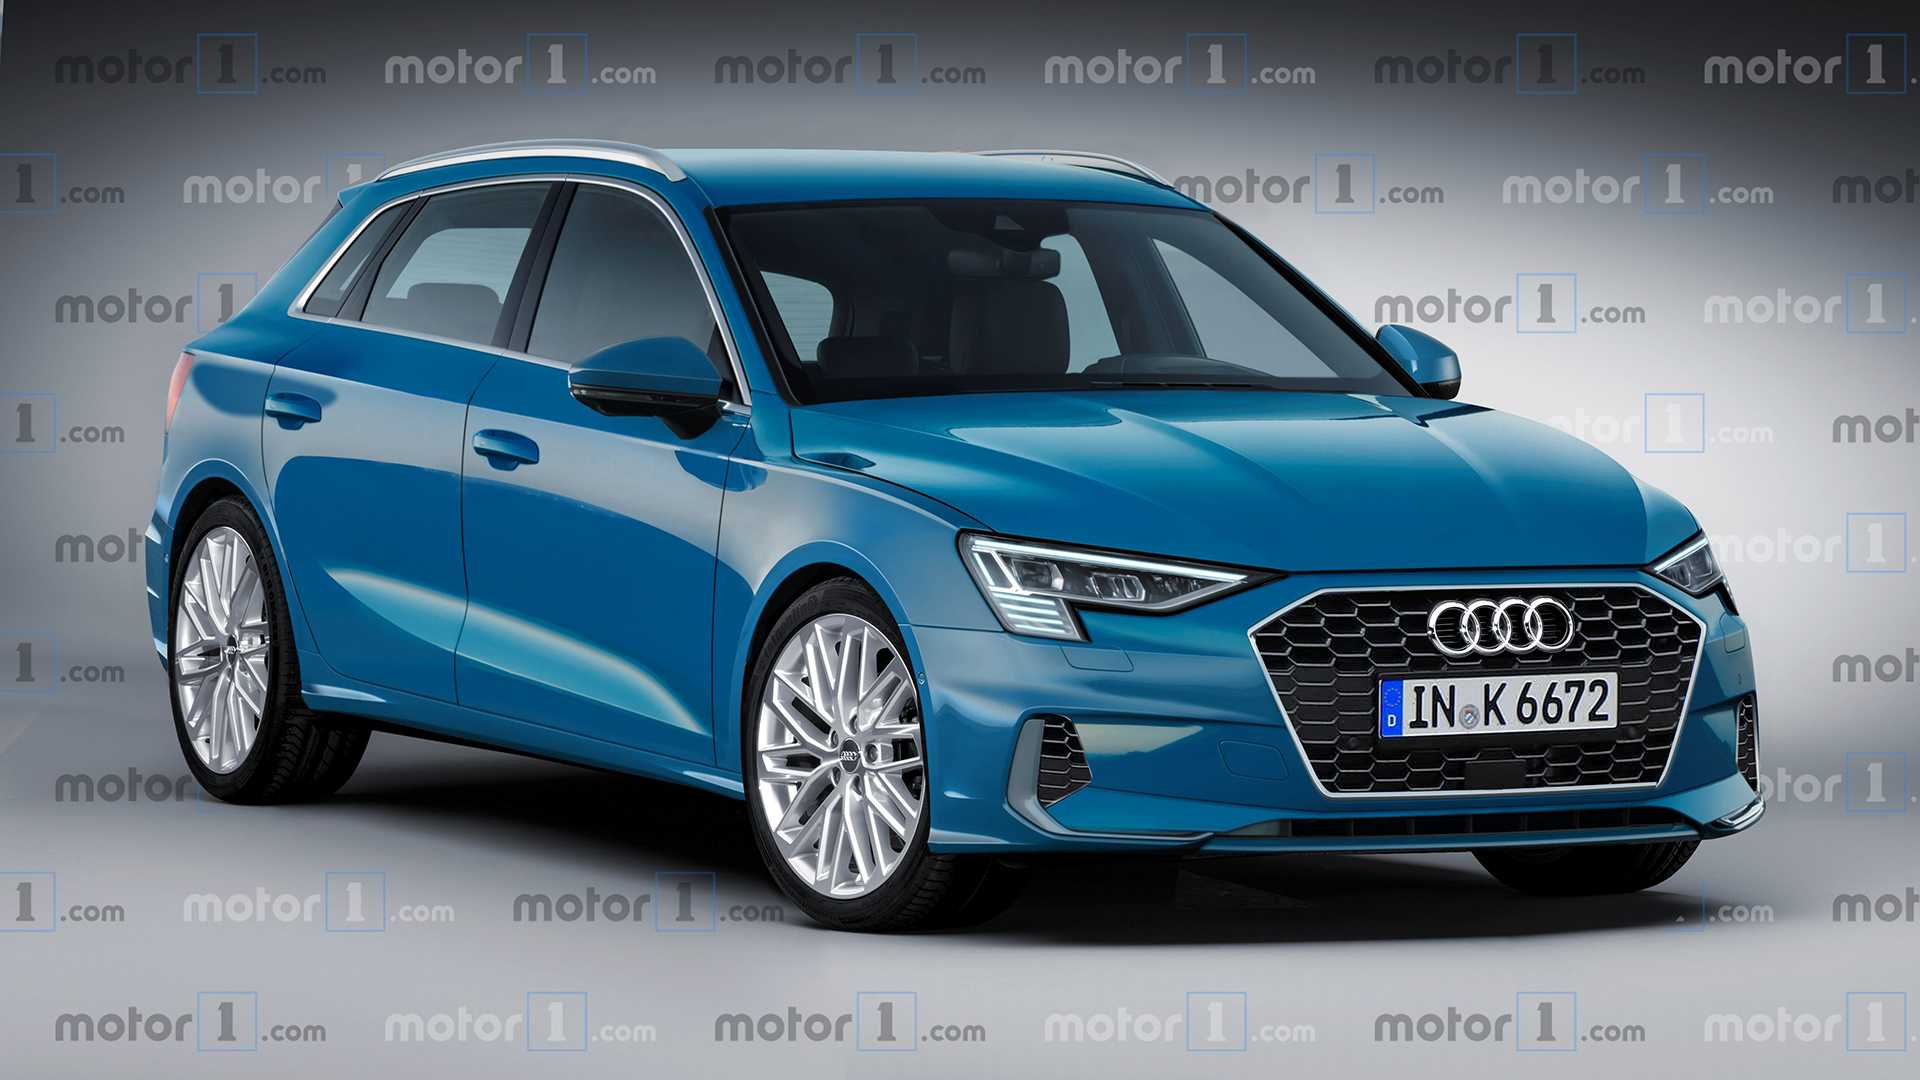 60 New 2020 Audi A3 Exterior And Interior